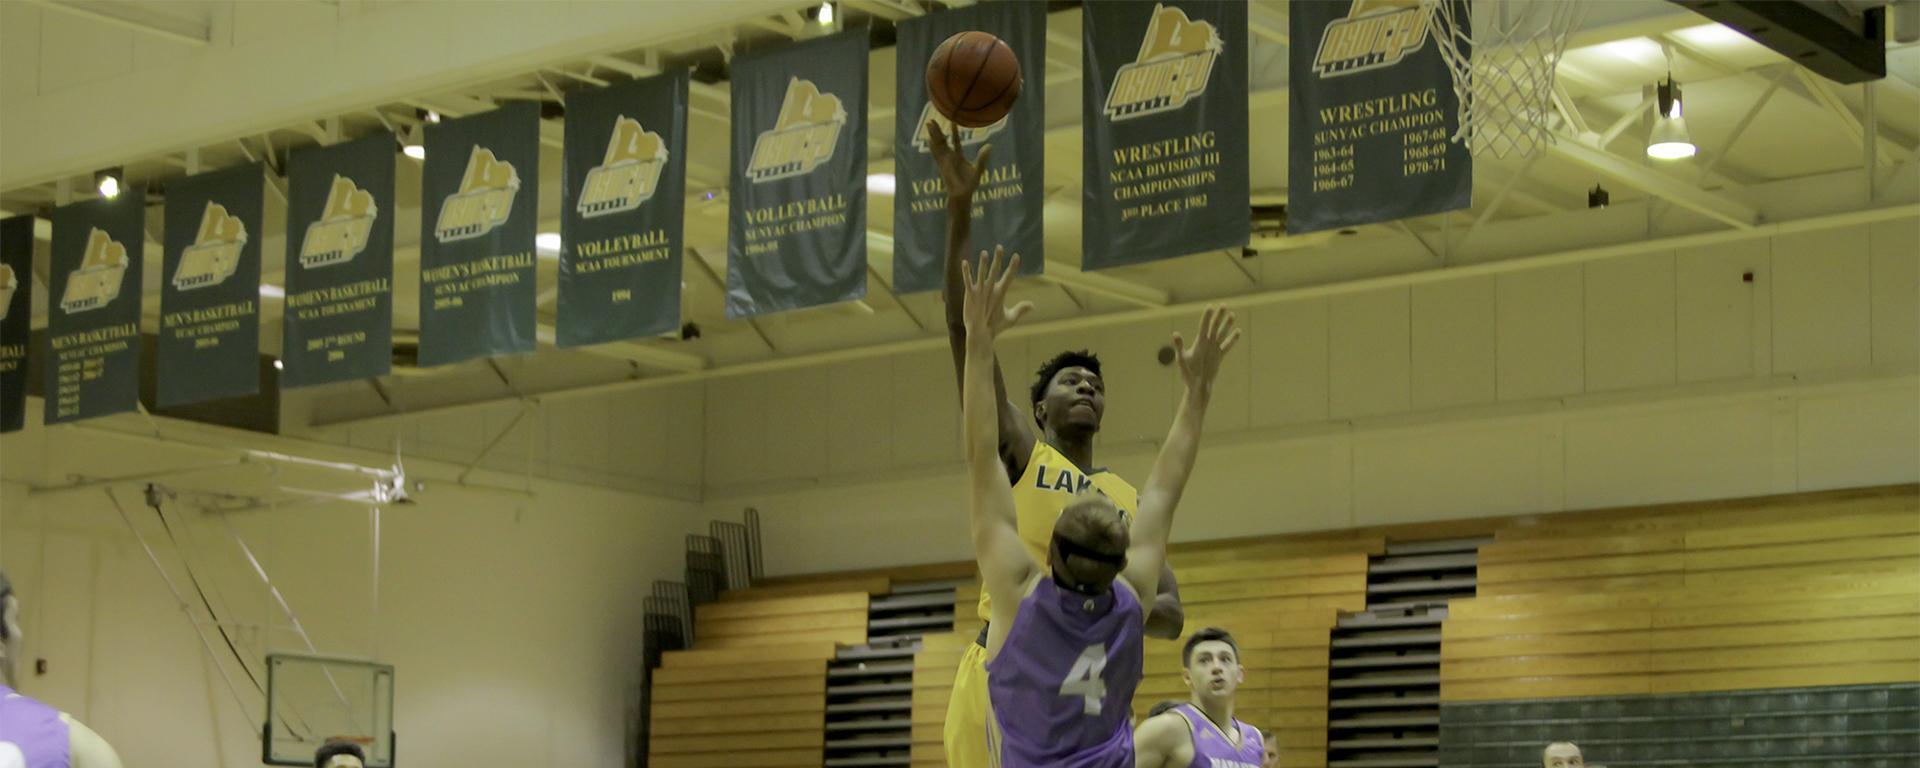 Tyler Pierre rises to shoot the basketball